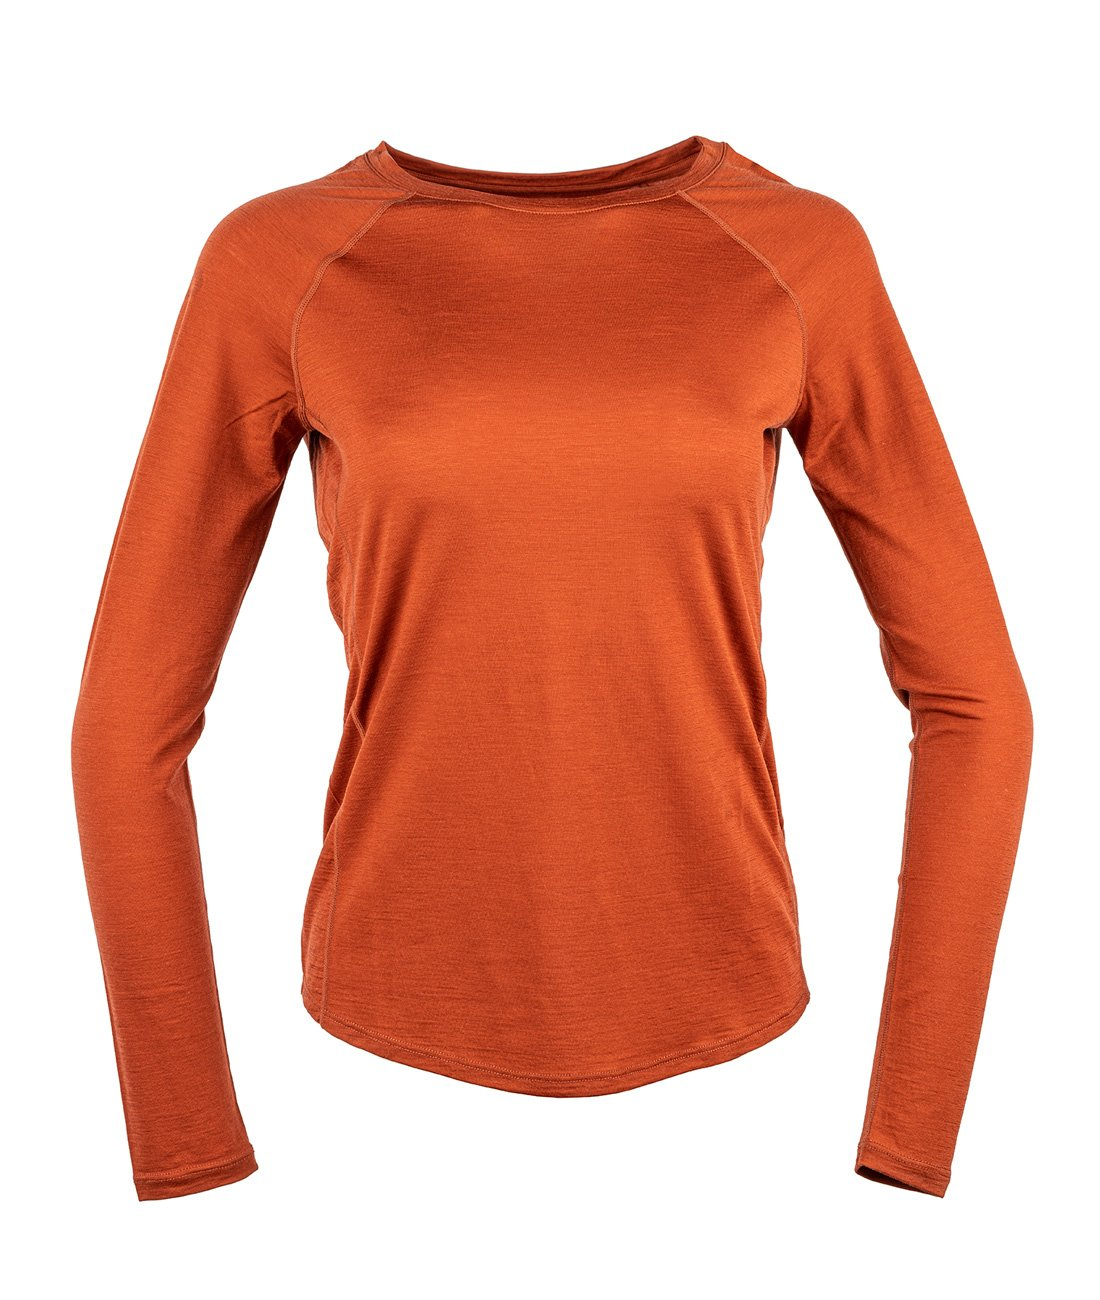 Womens Apex Merino Tech T-Shirt LS